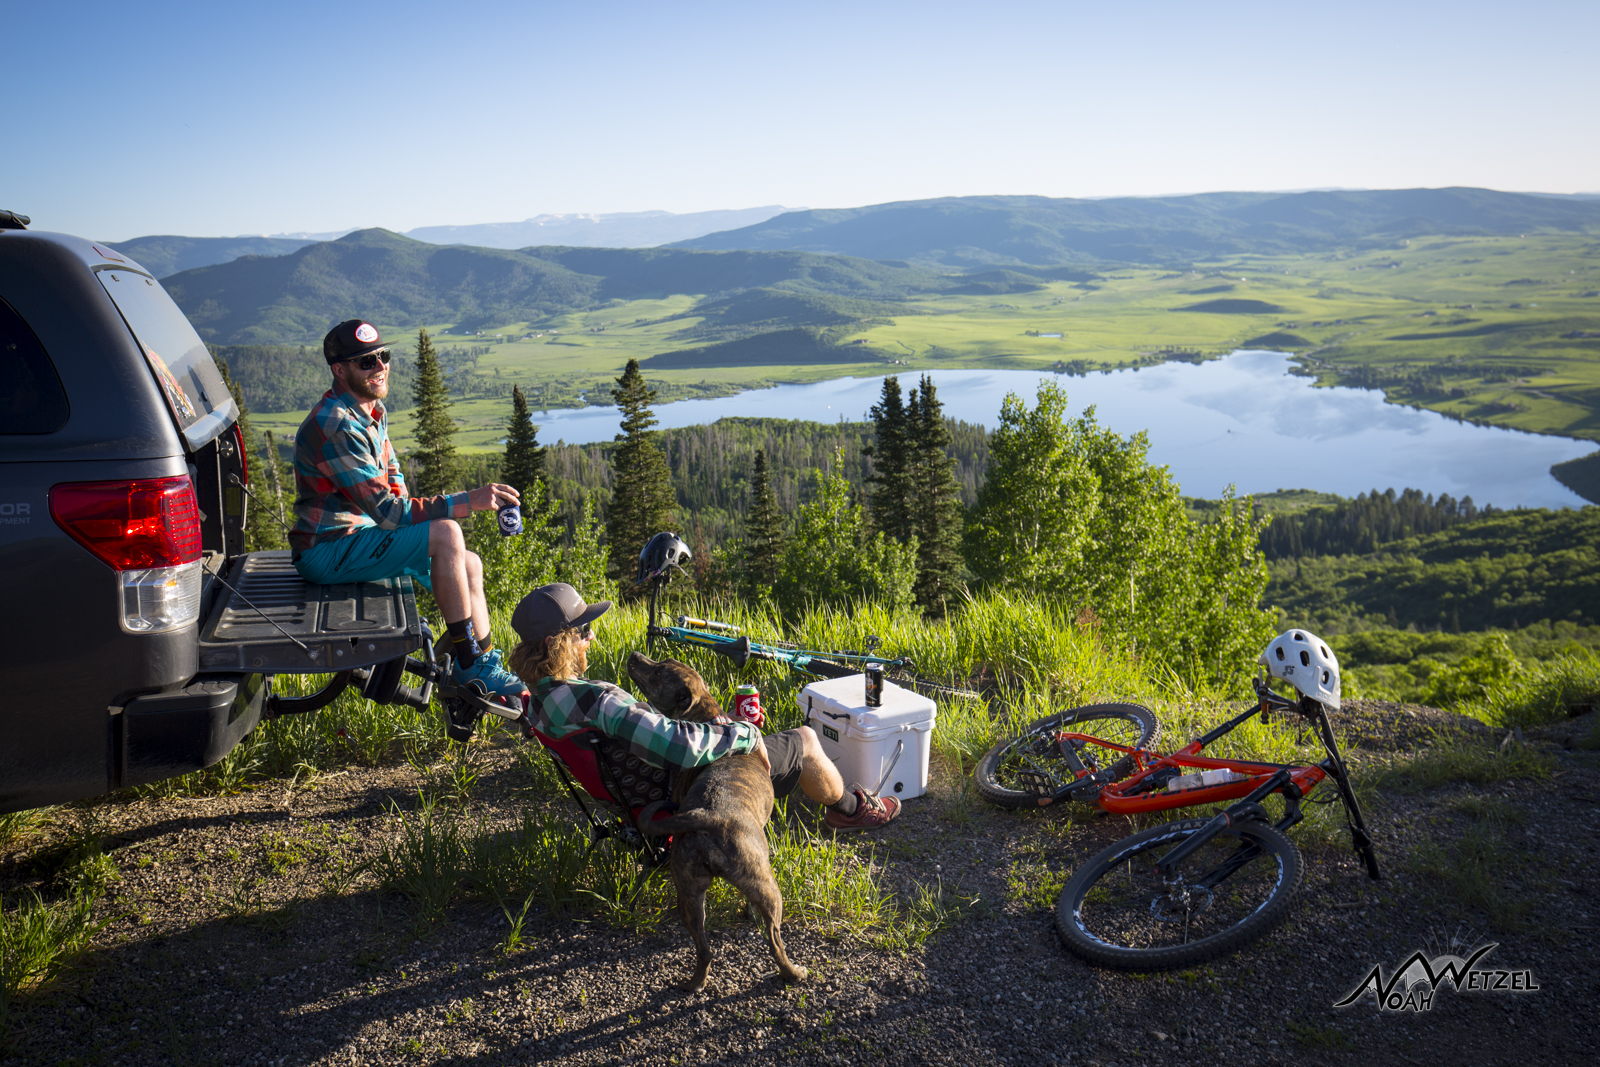 Justin Reiter and Mike Rundle overlooking the Yampa Valley on Rabbit Ears Pass. Colorado.